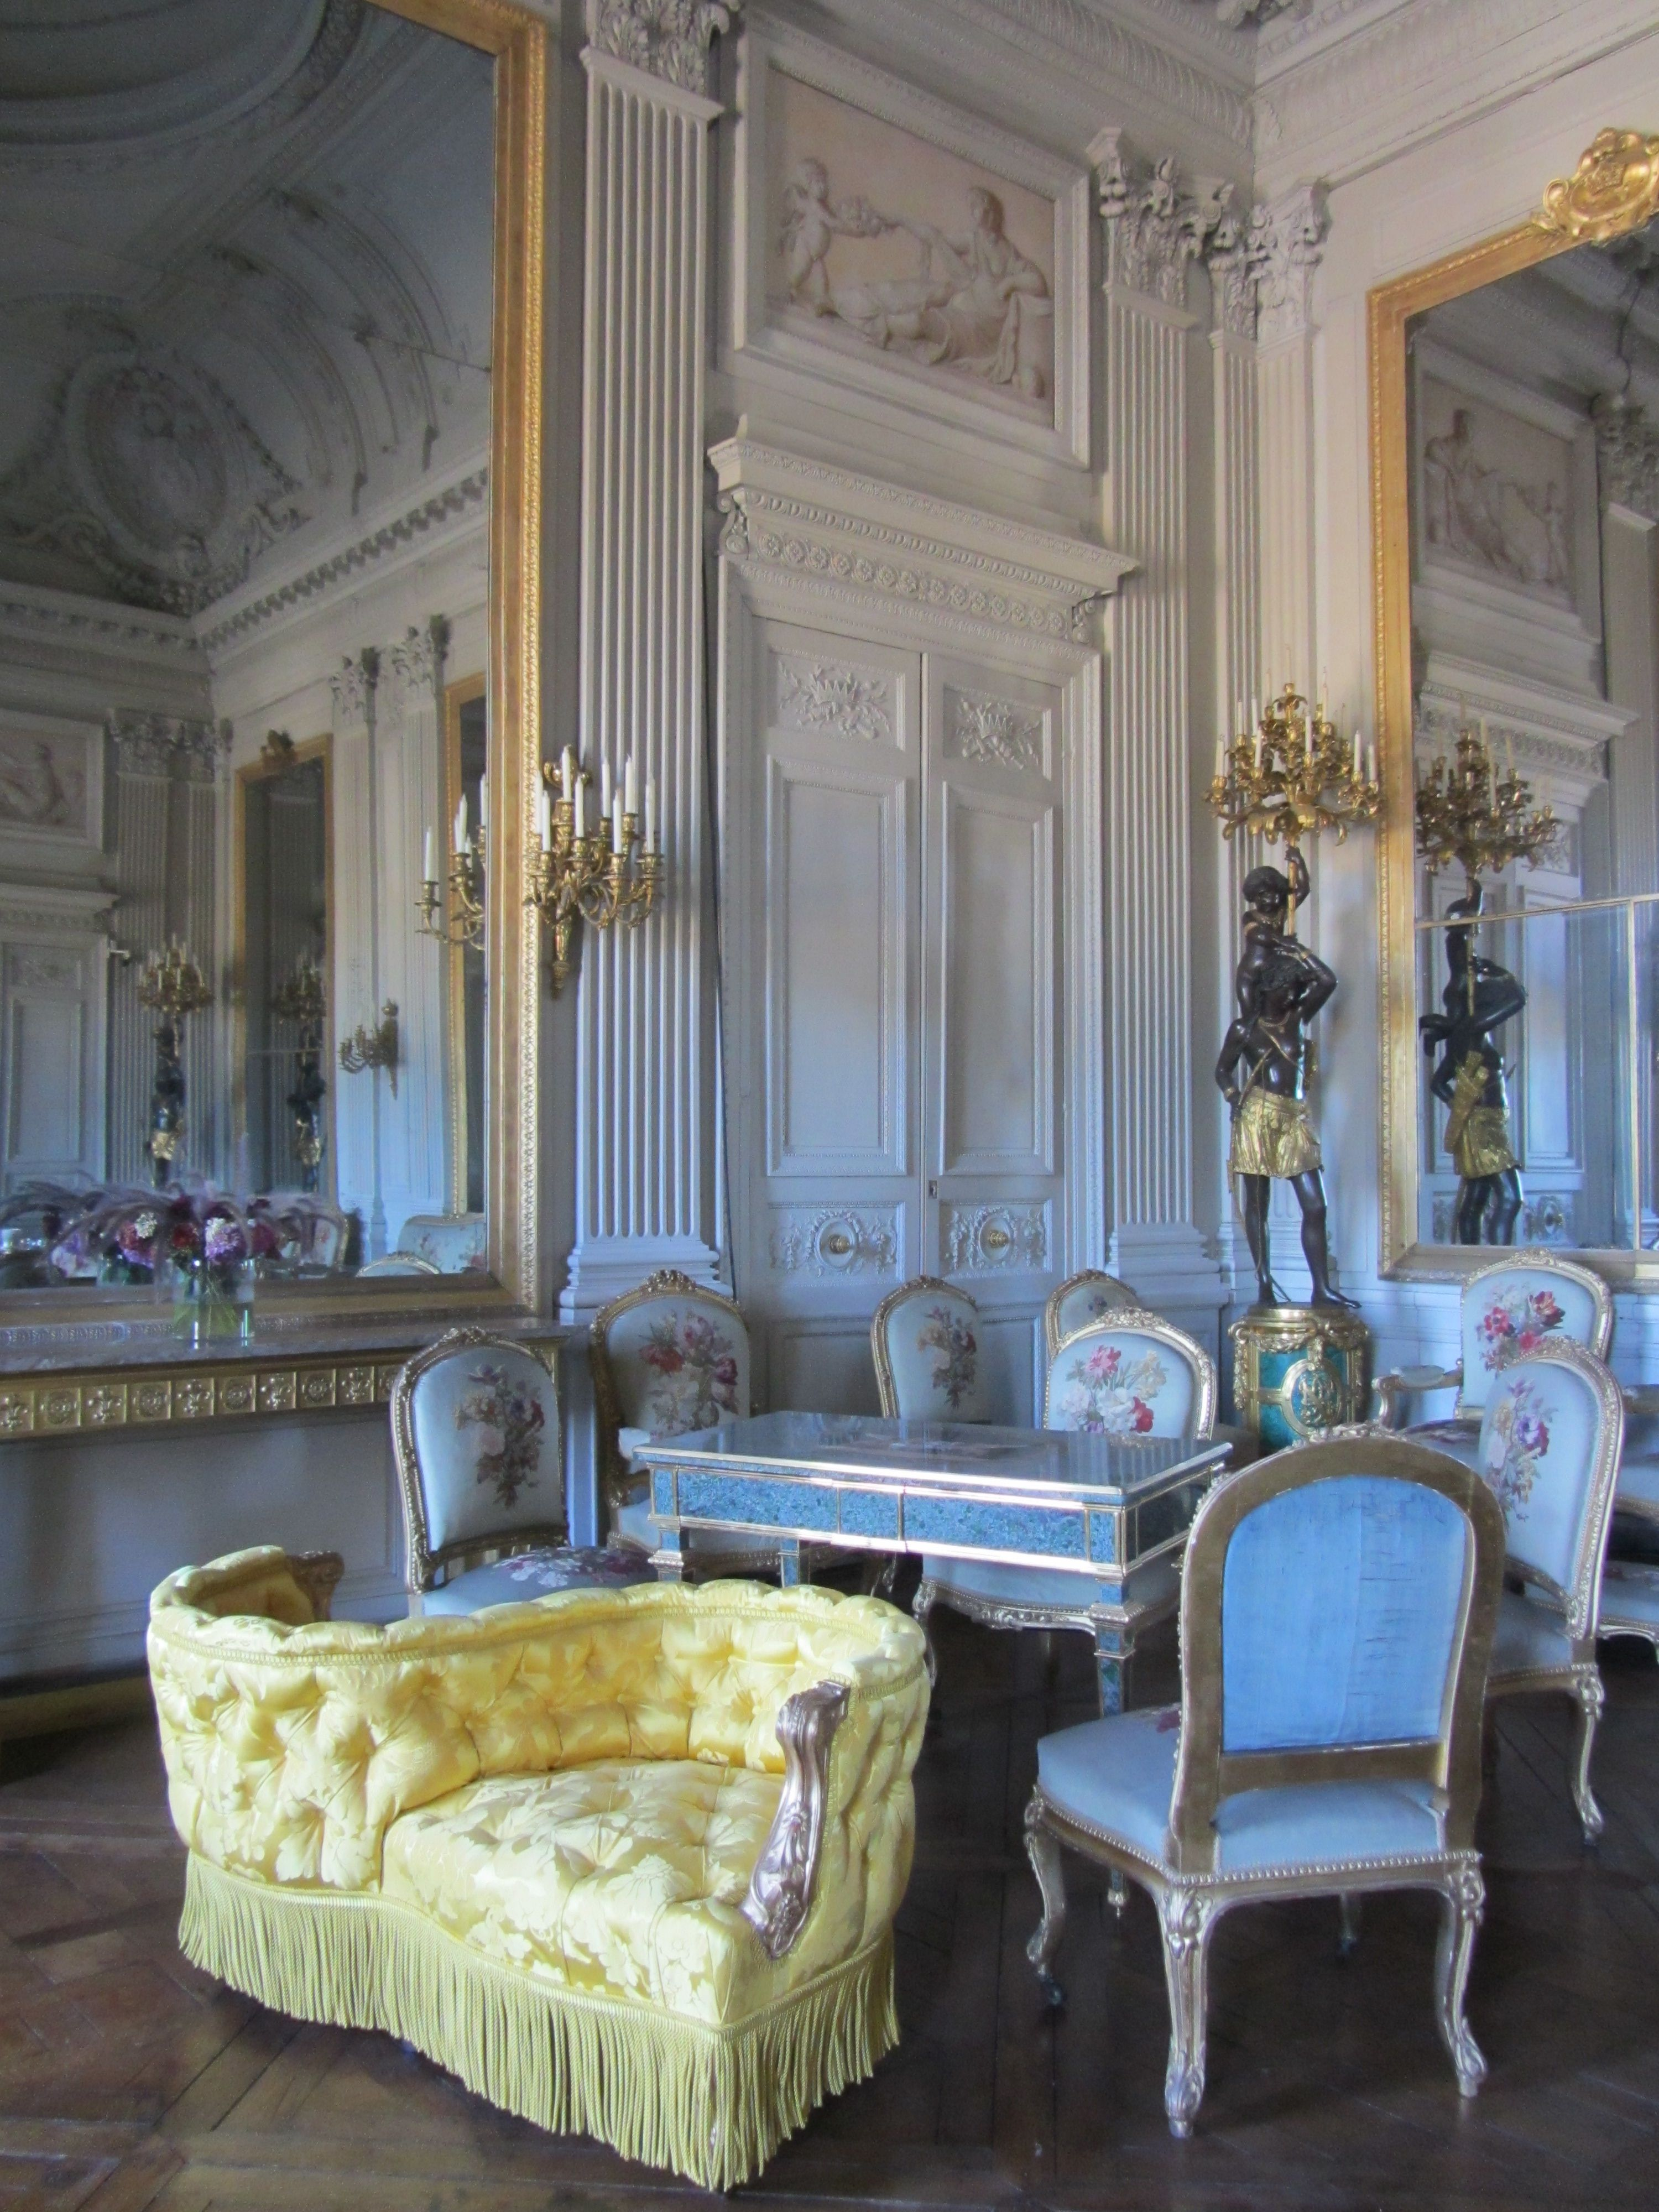 Chateau De Compiegne Interior France Interiordesign Chateaux